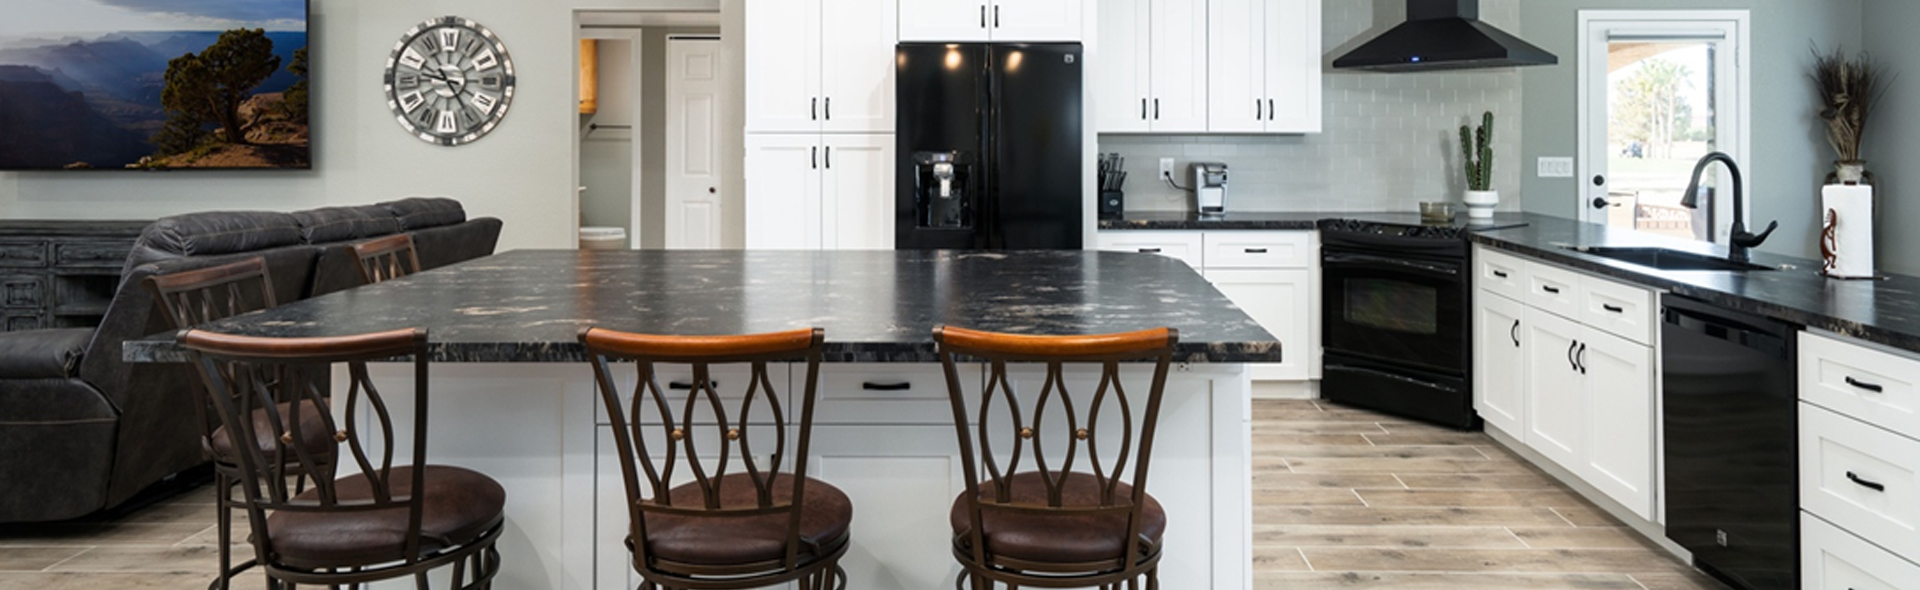 Kitchen Remodeling in Deer Valley, Glendale, North Phoenix, Paradise Valley, and Phoenix, AZ